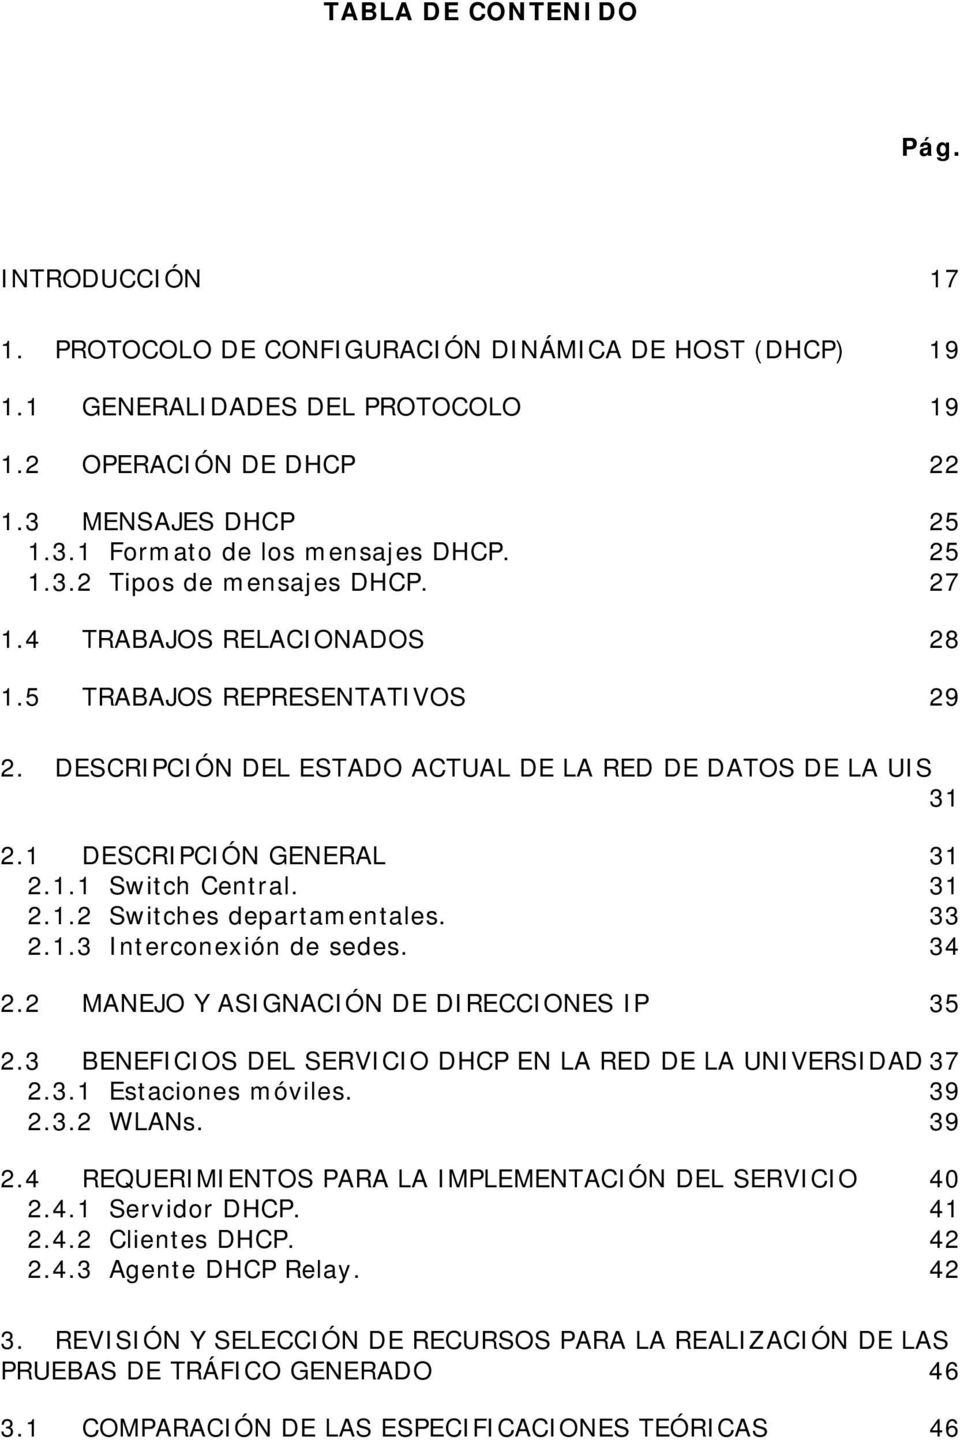 31 2.1.2 Switches departamentales. 33 2.1.3 Interconexión de sedes. 34 2.2 MANEJO Y ASIGNACIÓN DE DIRECCIONES IP 35 2.3 BENEFICIOS DEL SERVICIO DHCP EN LA RED DE LA UNIVERSIDAD 37 2.3.1 Estaciones móviles.